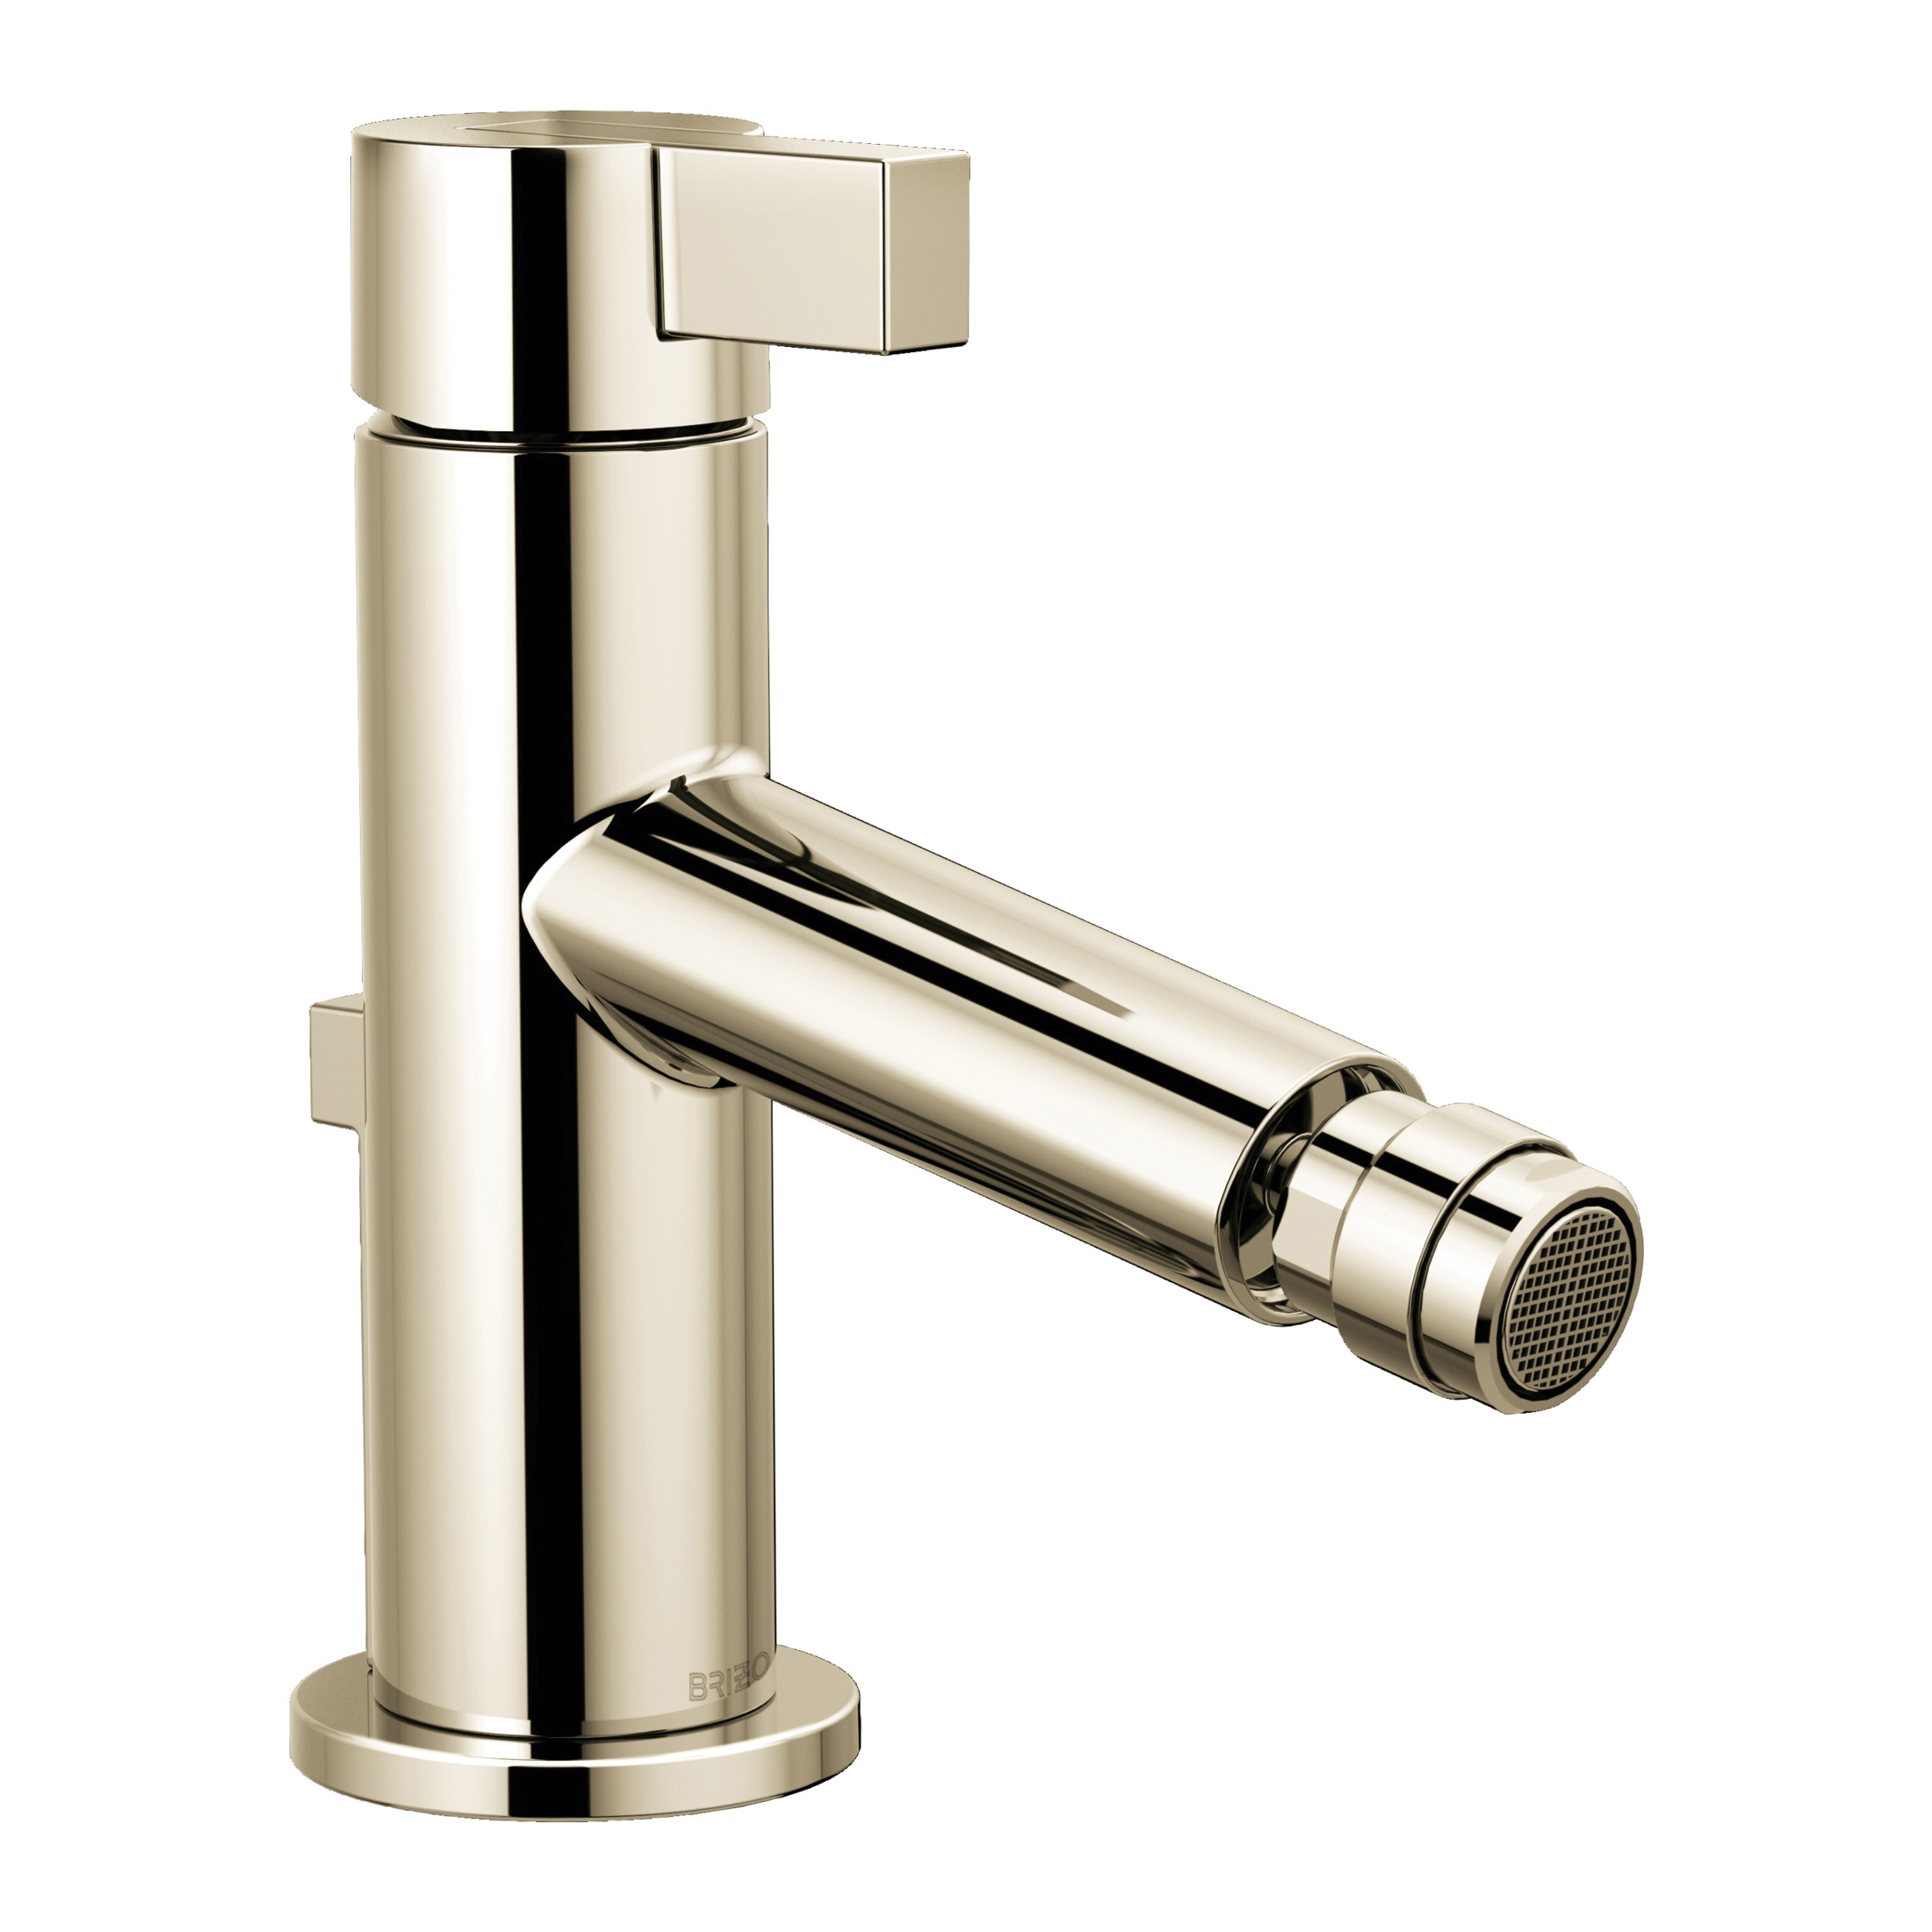 Brizo® 68135-PN Litze™ Bidet Faucet, 2-1/2 in H Spout, 1 Handle, Pop-Up Drain, Polished Nickel, Import, Commercial